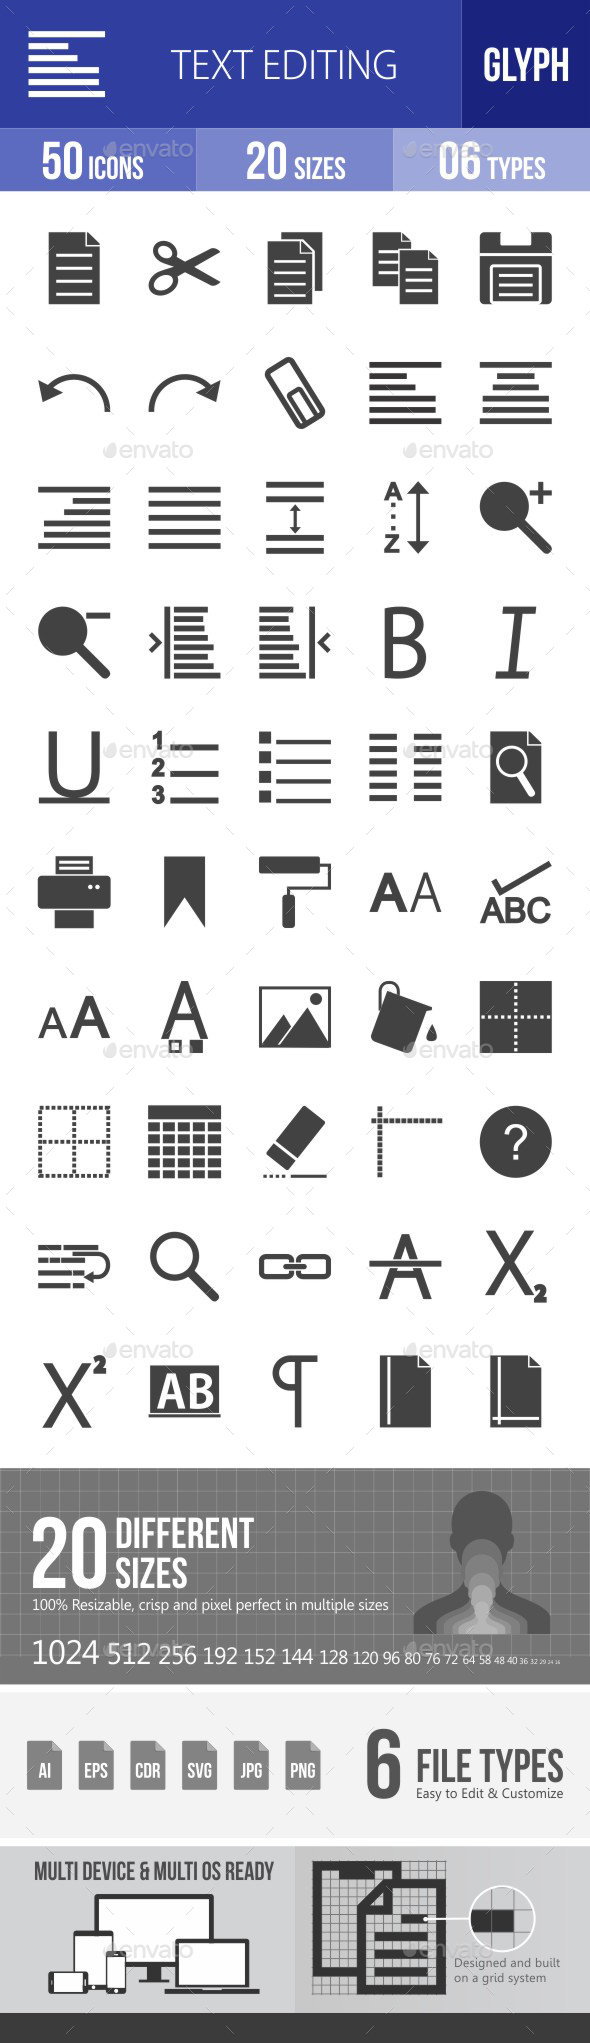 Text Editing Glyph Icons - Icons